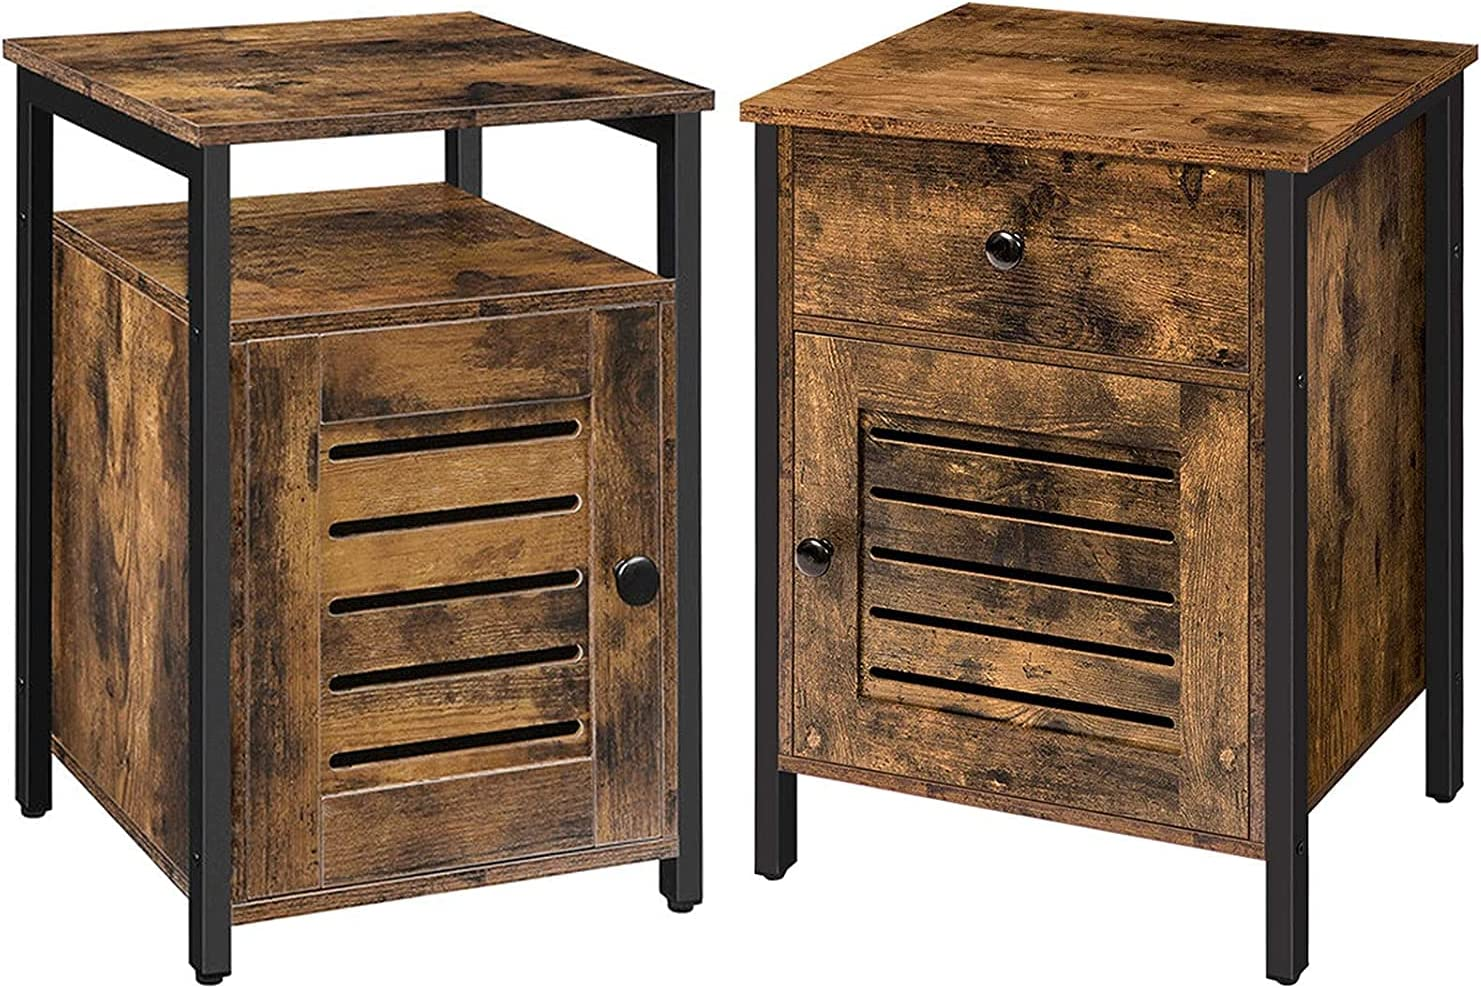 Max 45% OFF Japan Maker New Nightstand and End Table Bundle Storage with Cabinet